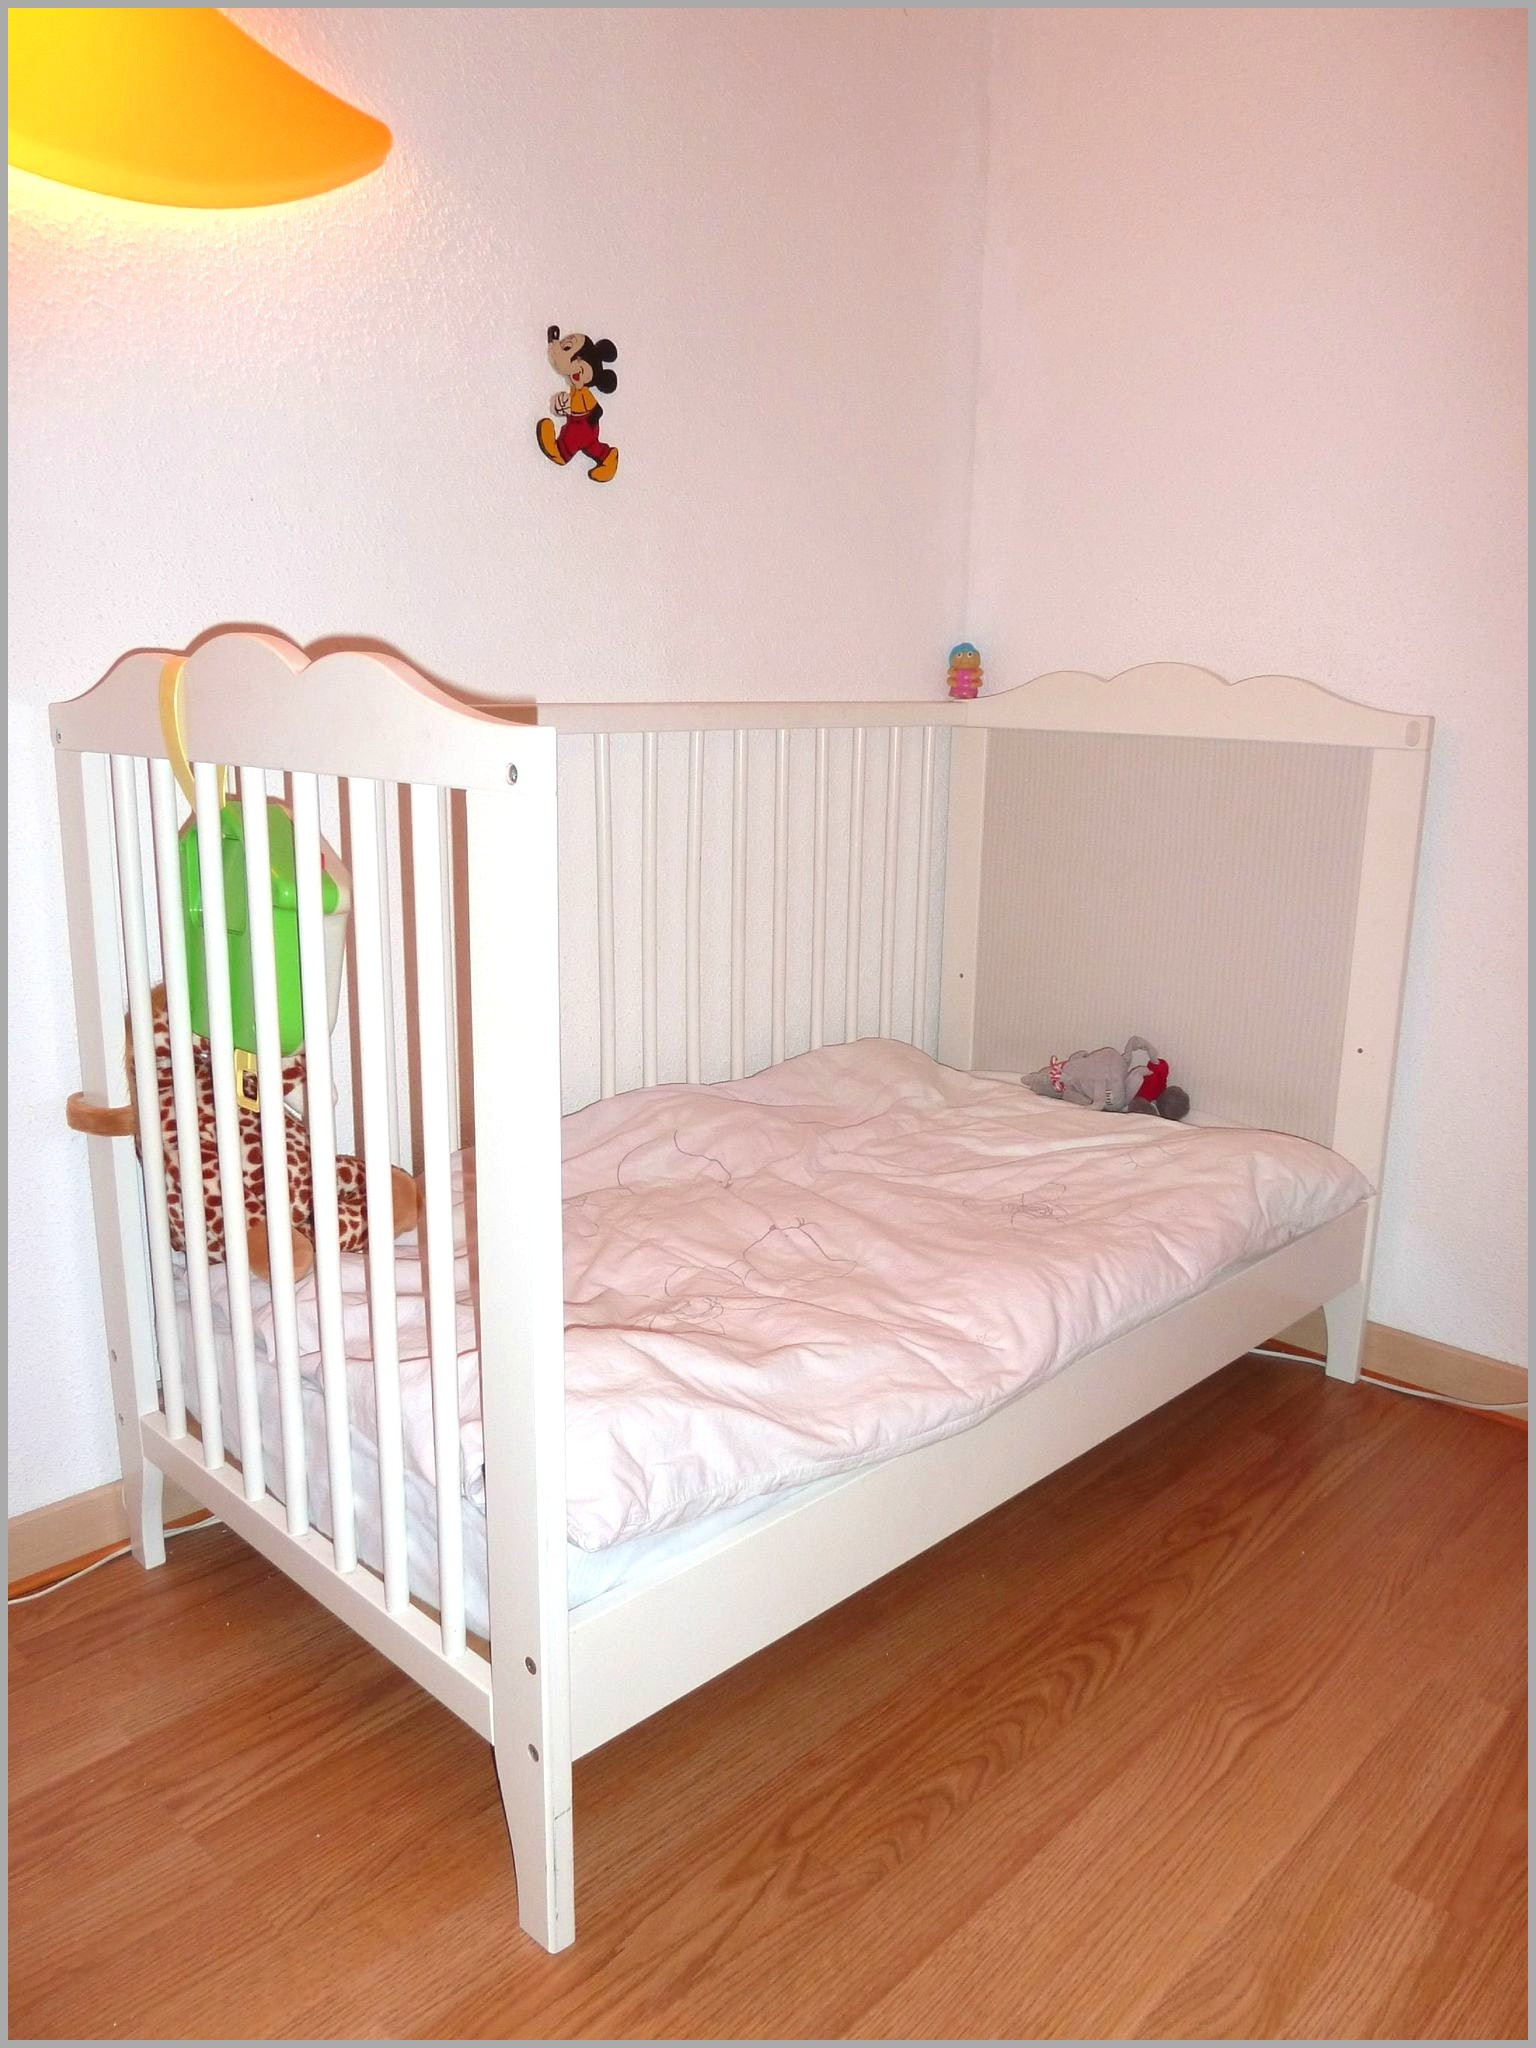 luxe canape darty 20 luxury chambre bebe carrefour bonnes idees